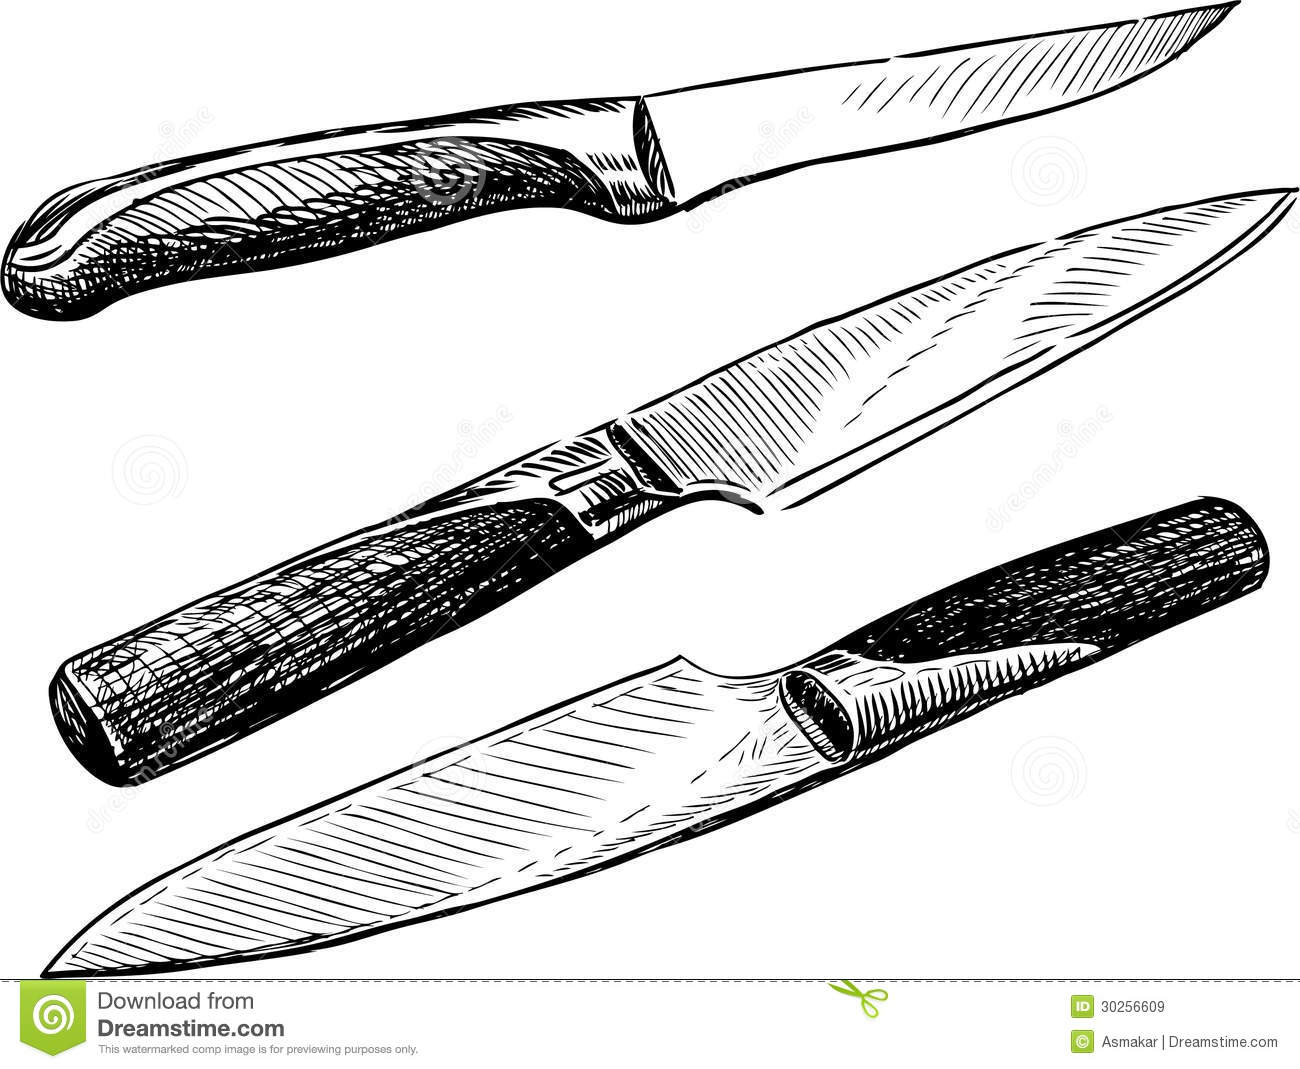 Knives royalty free stock images image 30256609 for Kitchen set drawing